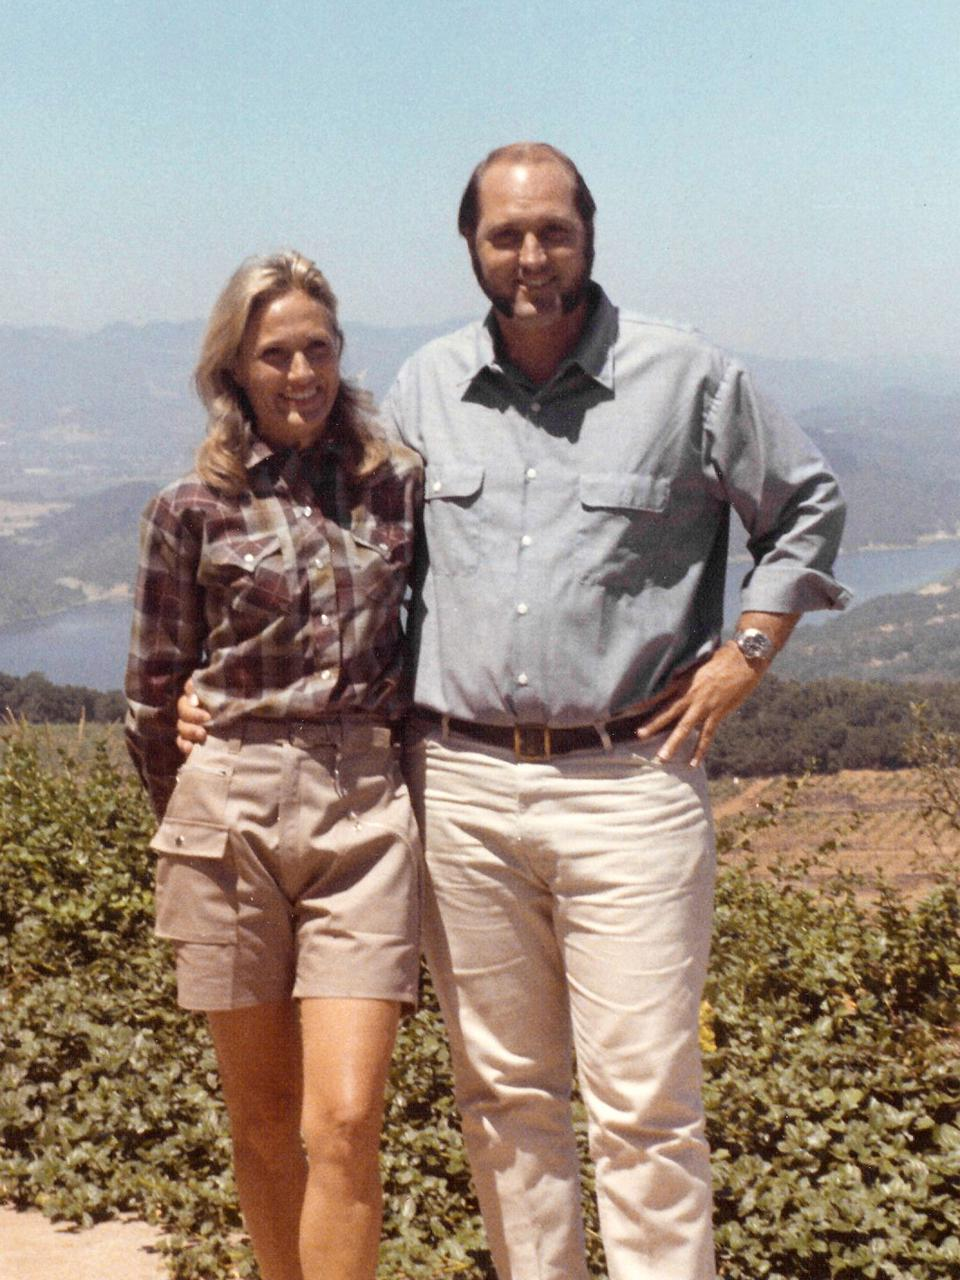 Molly and Donn Chappellet in 1968